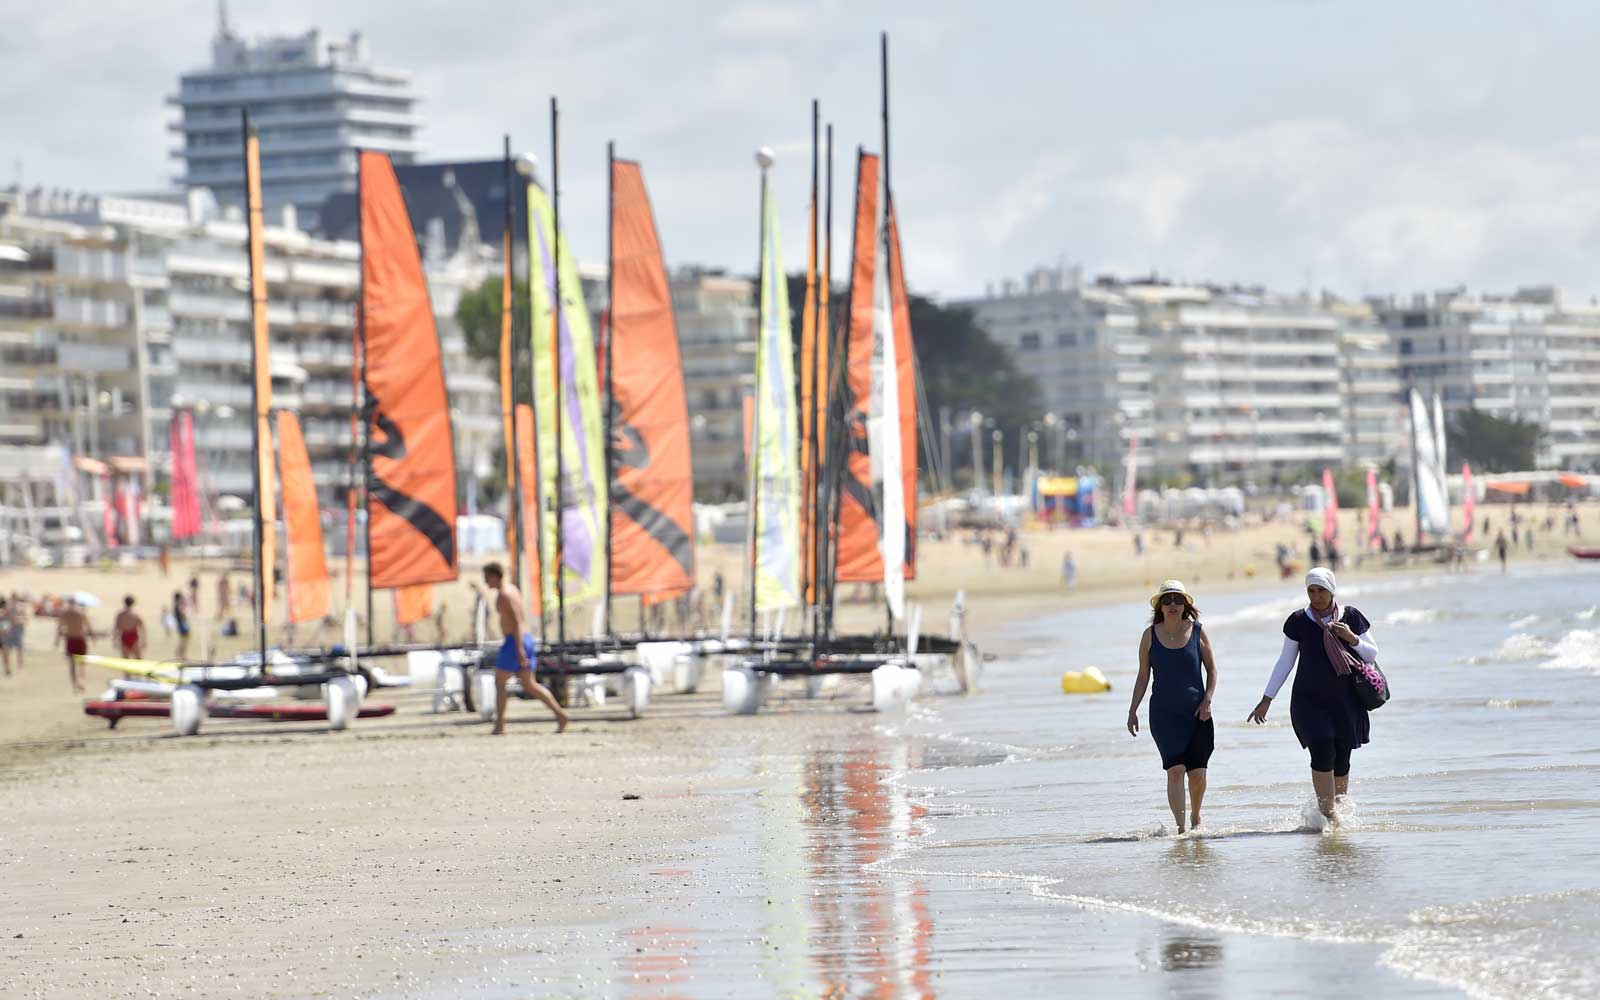 People enjoy time at the beach in La Baule